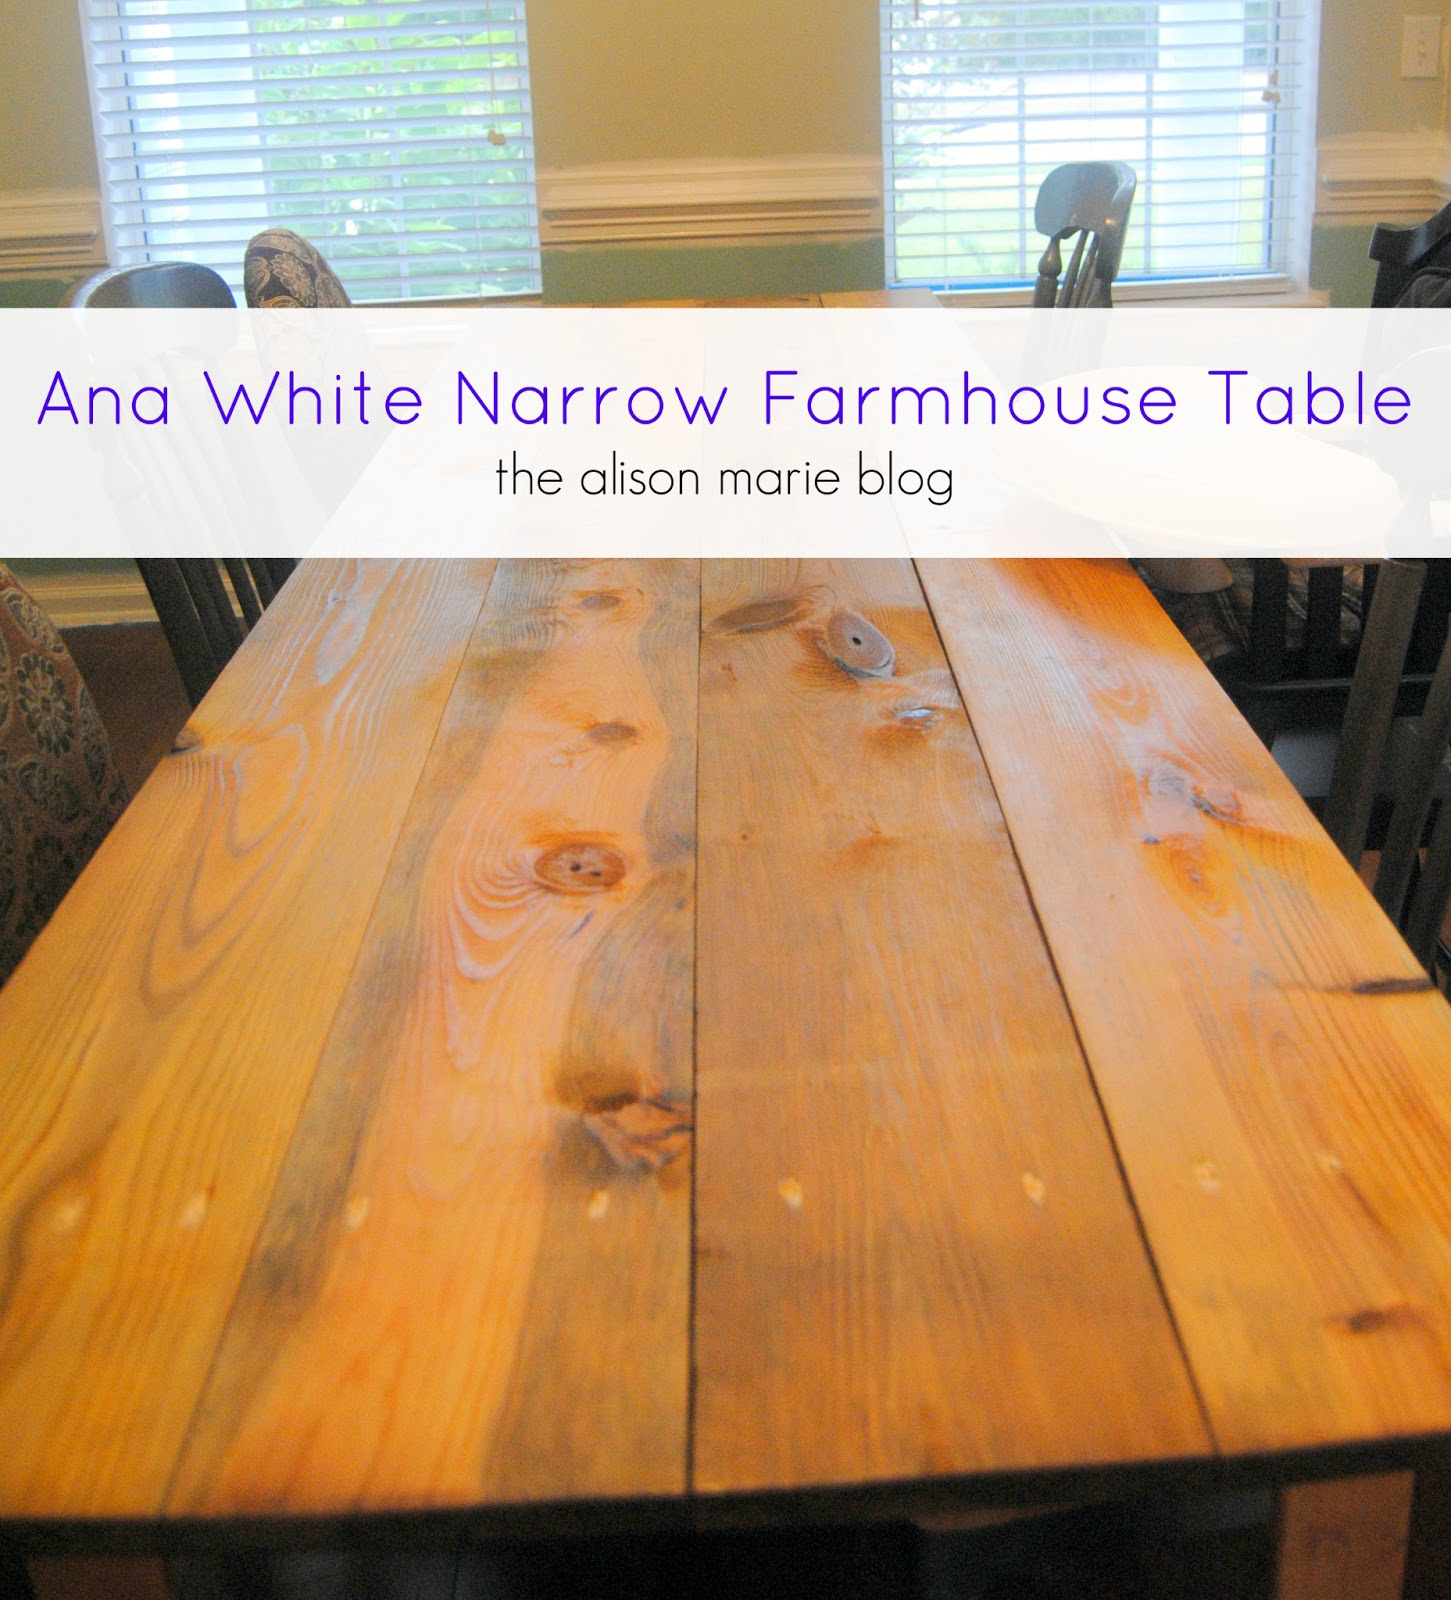 Best woodworking plans free 2015 Narrow farmhouse table plans